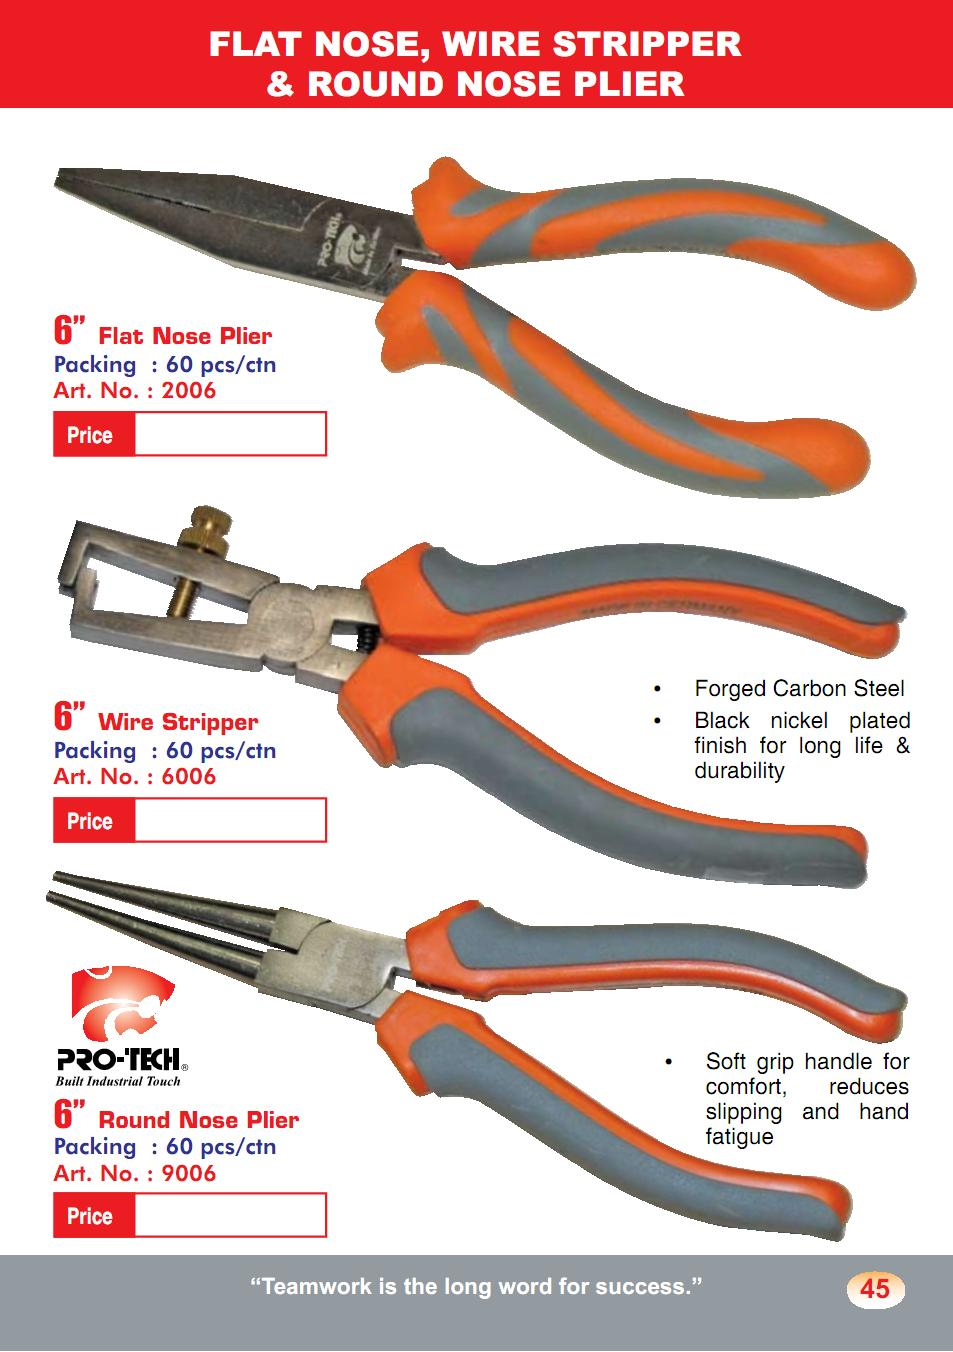 Flat Nose Wire Stripper and Round Nose Plier (PL05)